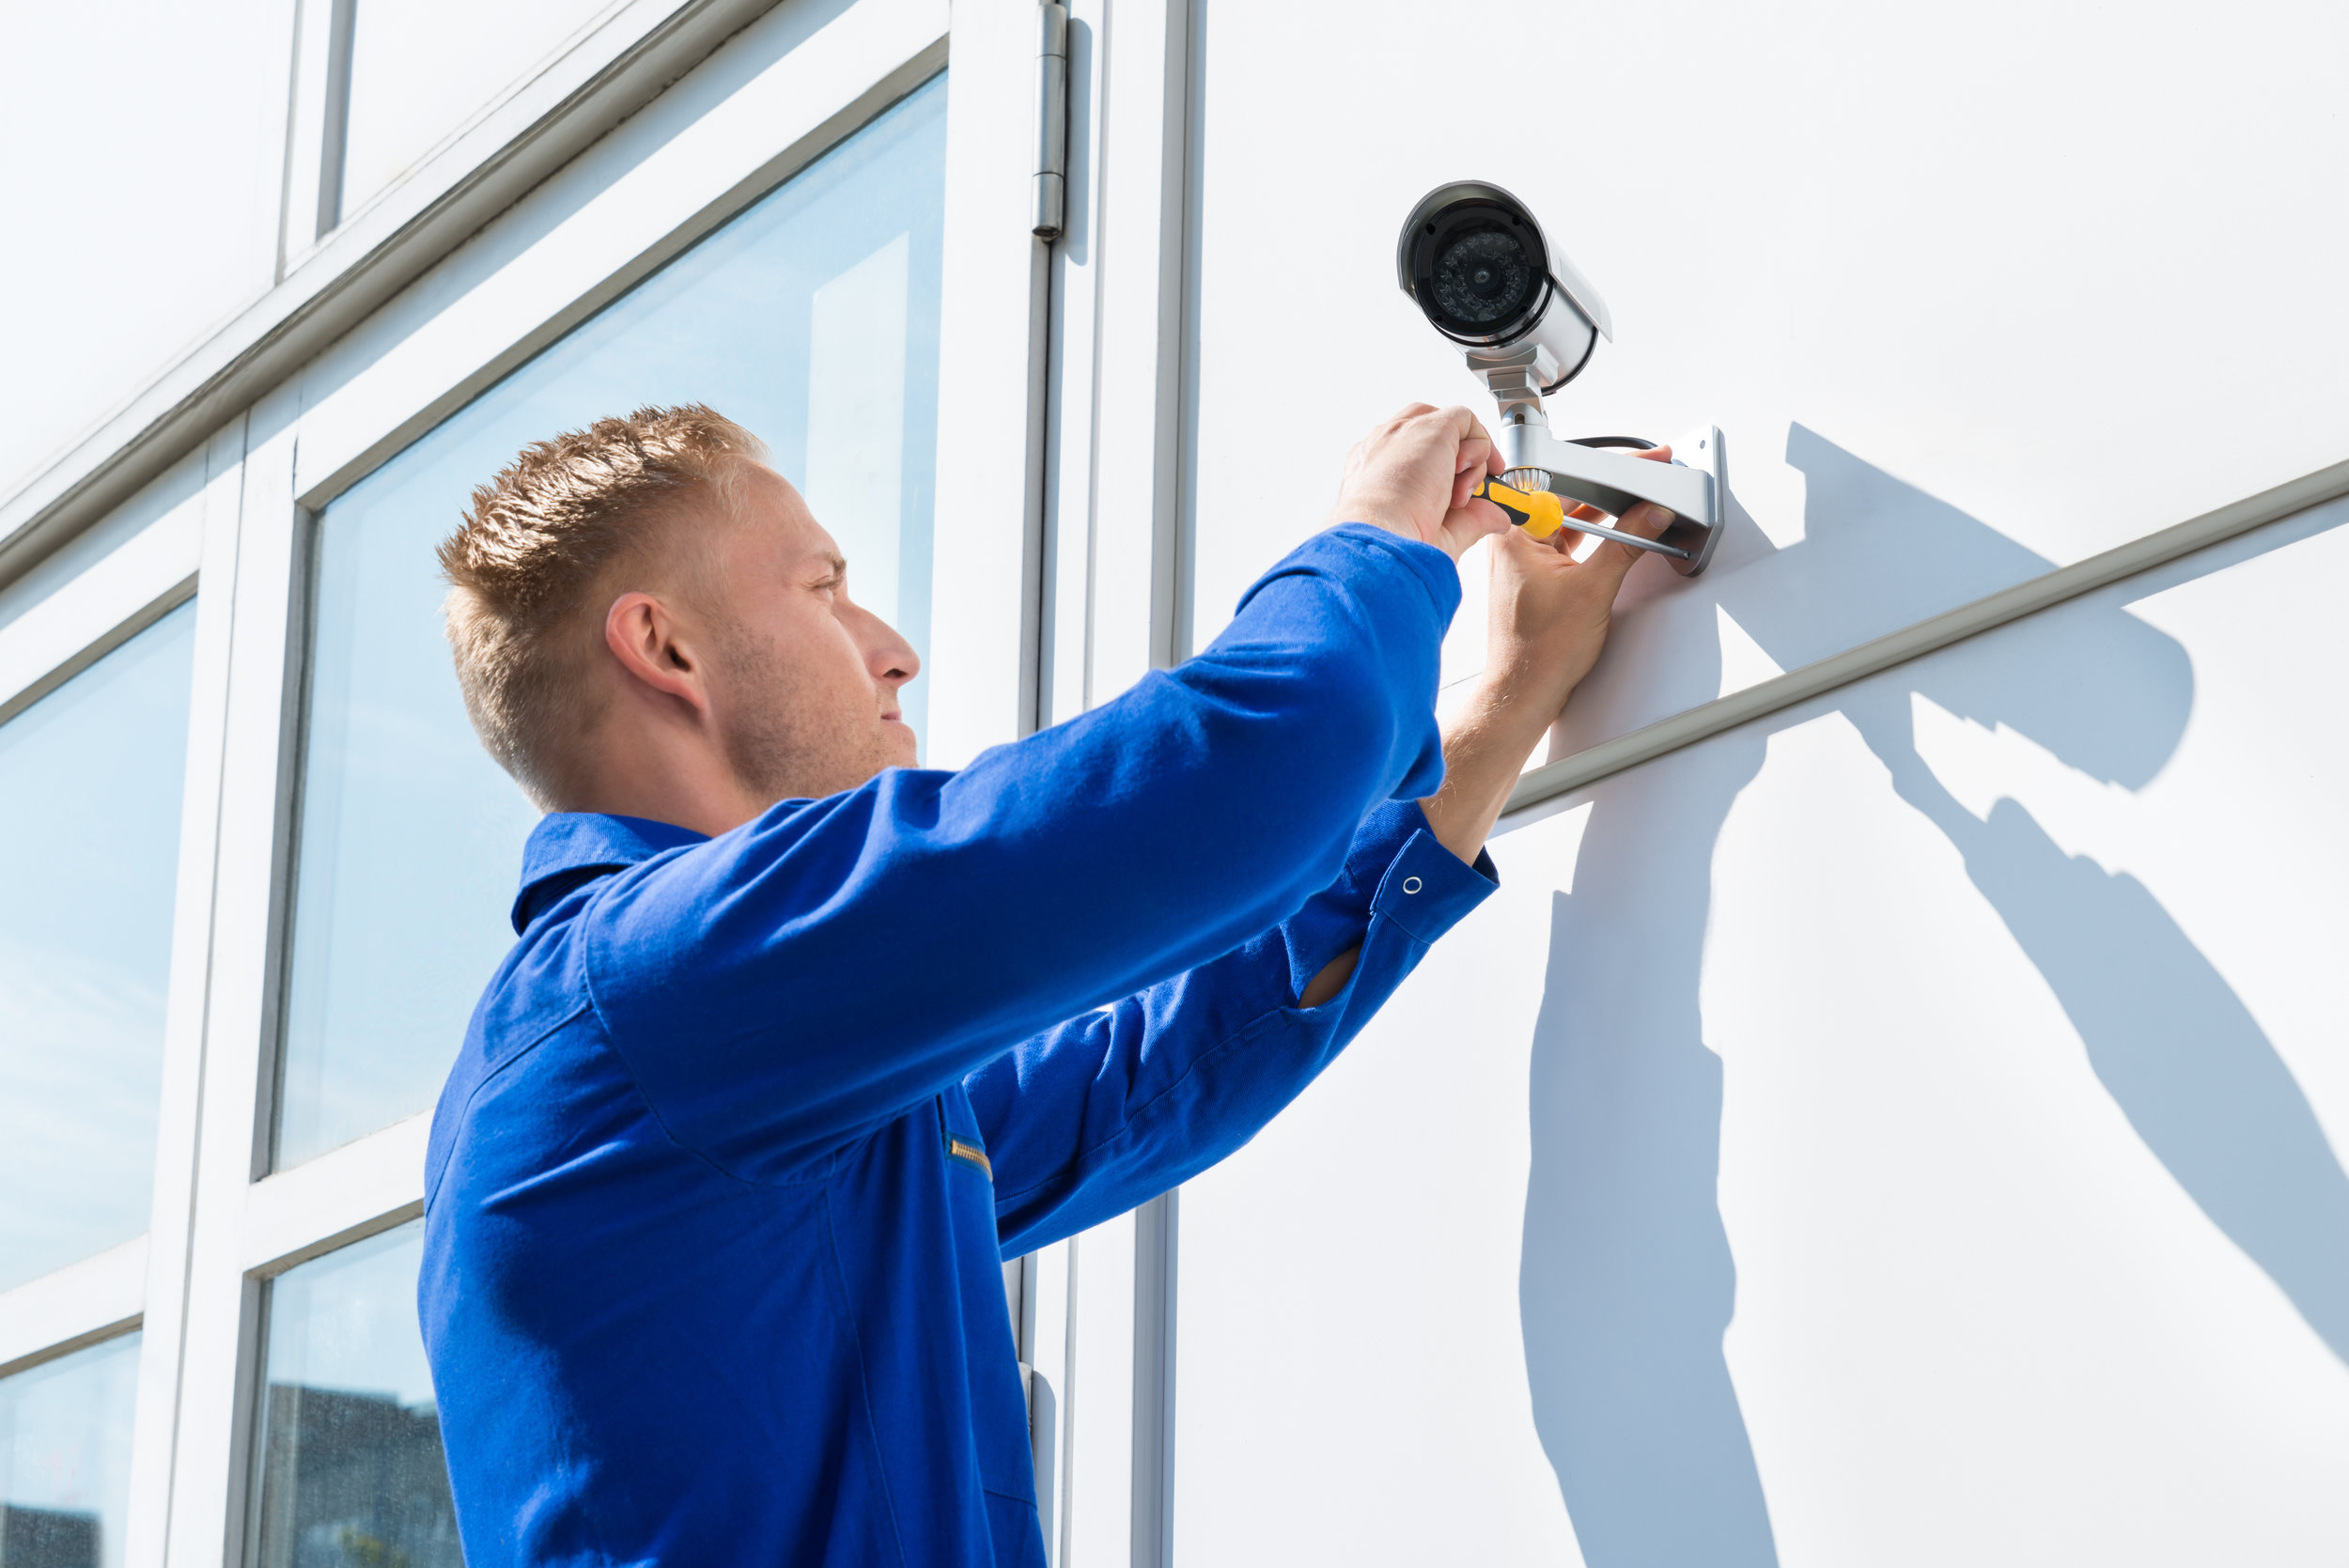 Professional Installation - We are your security camera installation pros. We will work with you from start to finish to ensure that you are 100% satisfied.